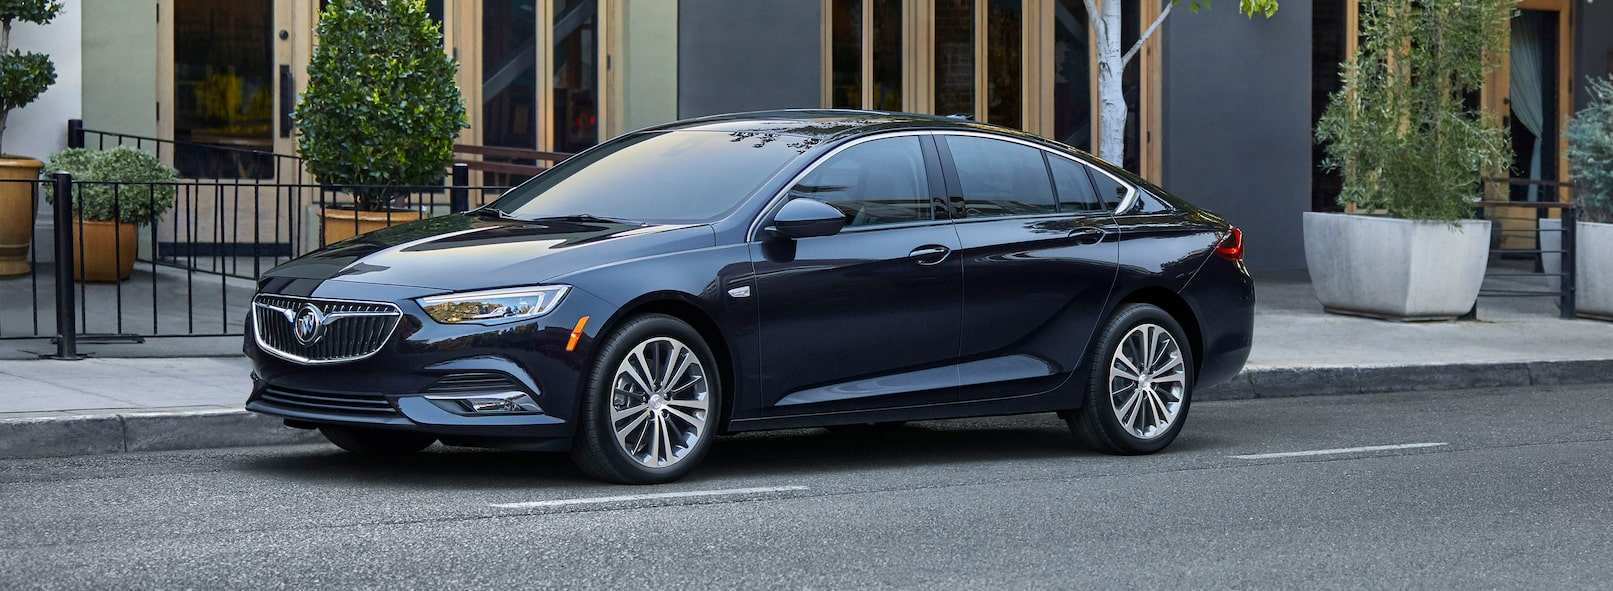 24 The Best 2019 All Buick Verano Release Date